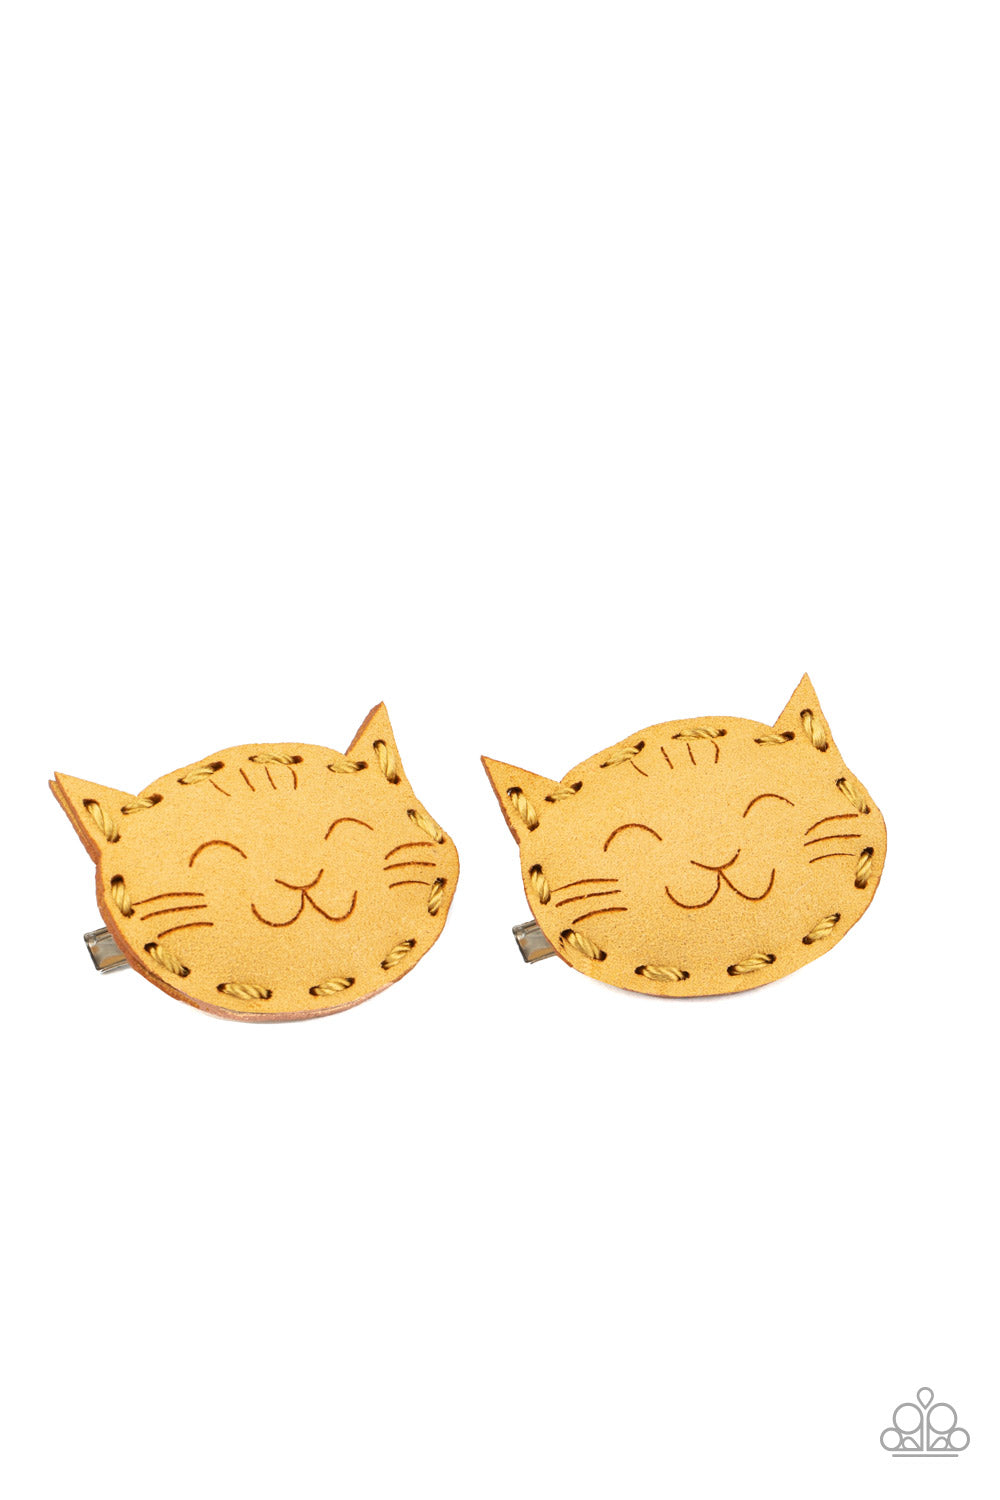 MEOW Youre Talking! Yellow Hair Clips Kitty Paparazzi Accessories New